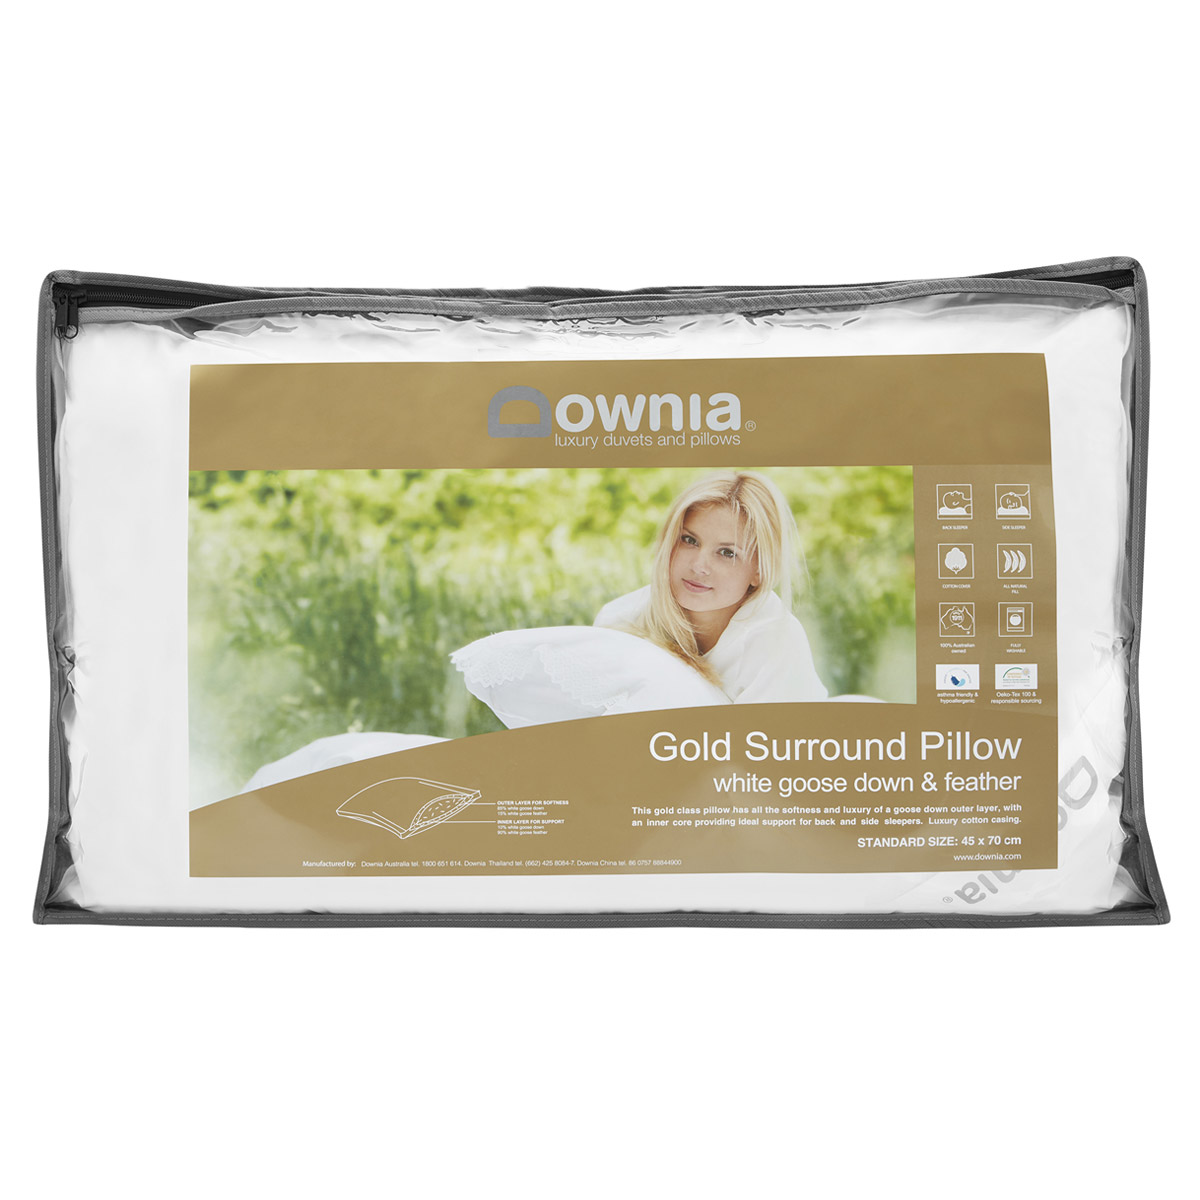 Downia Gold White Goose Down and Feather Surround Pillow